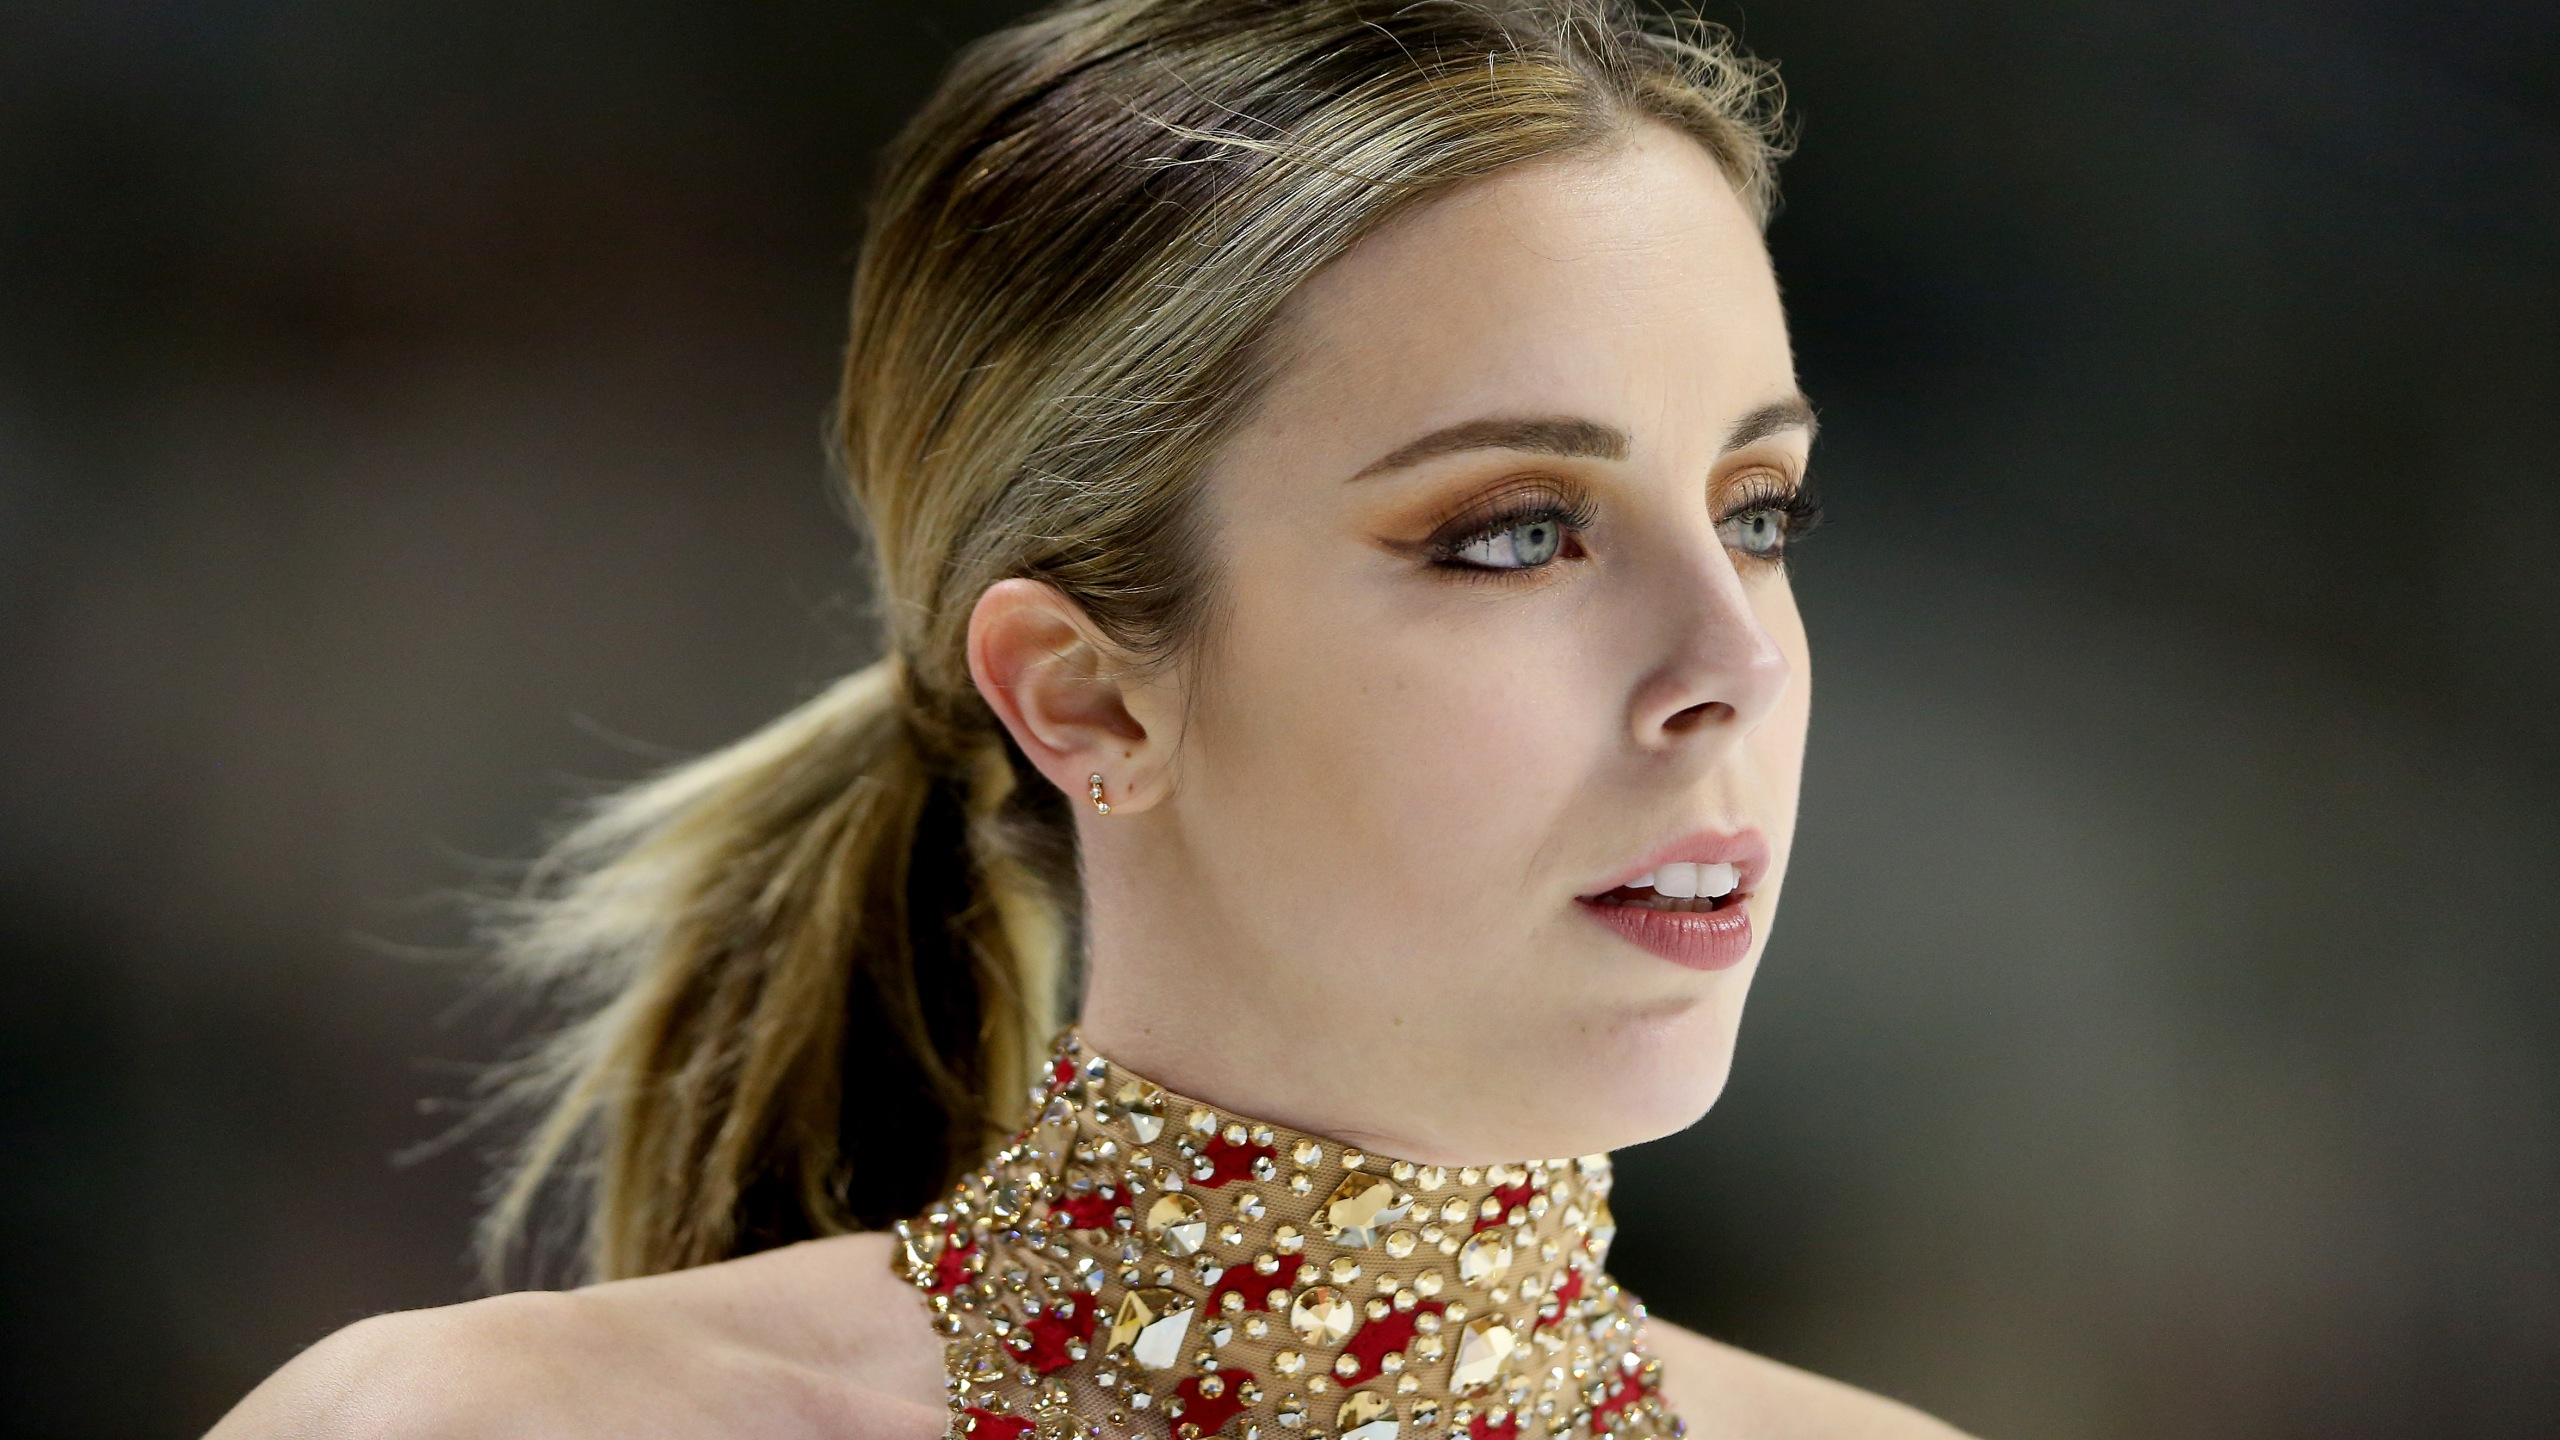 Ashley Wagner competes in the Ladies Short Program during the 2018 Prudential U.S. Figure Skating Championships at the SAP Center in San Jose on Jan. 3, 2018. (Credit: Matthew Stockman/Getty Images)